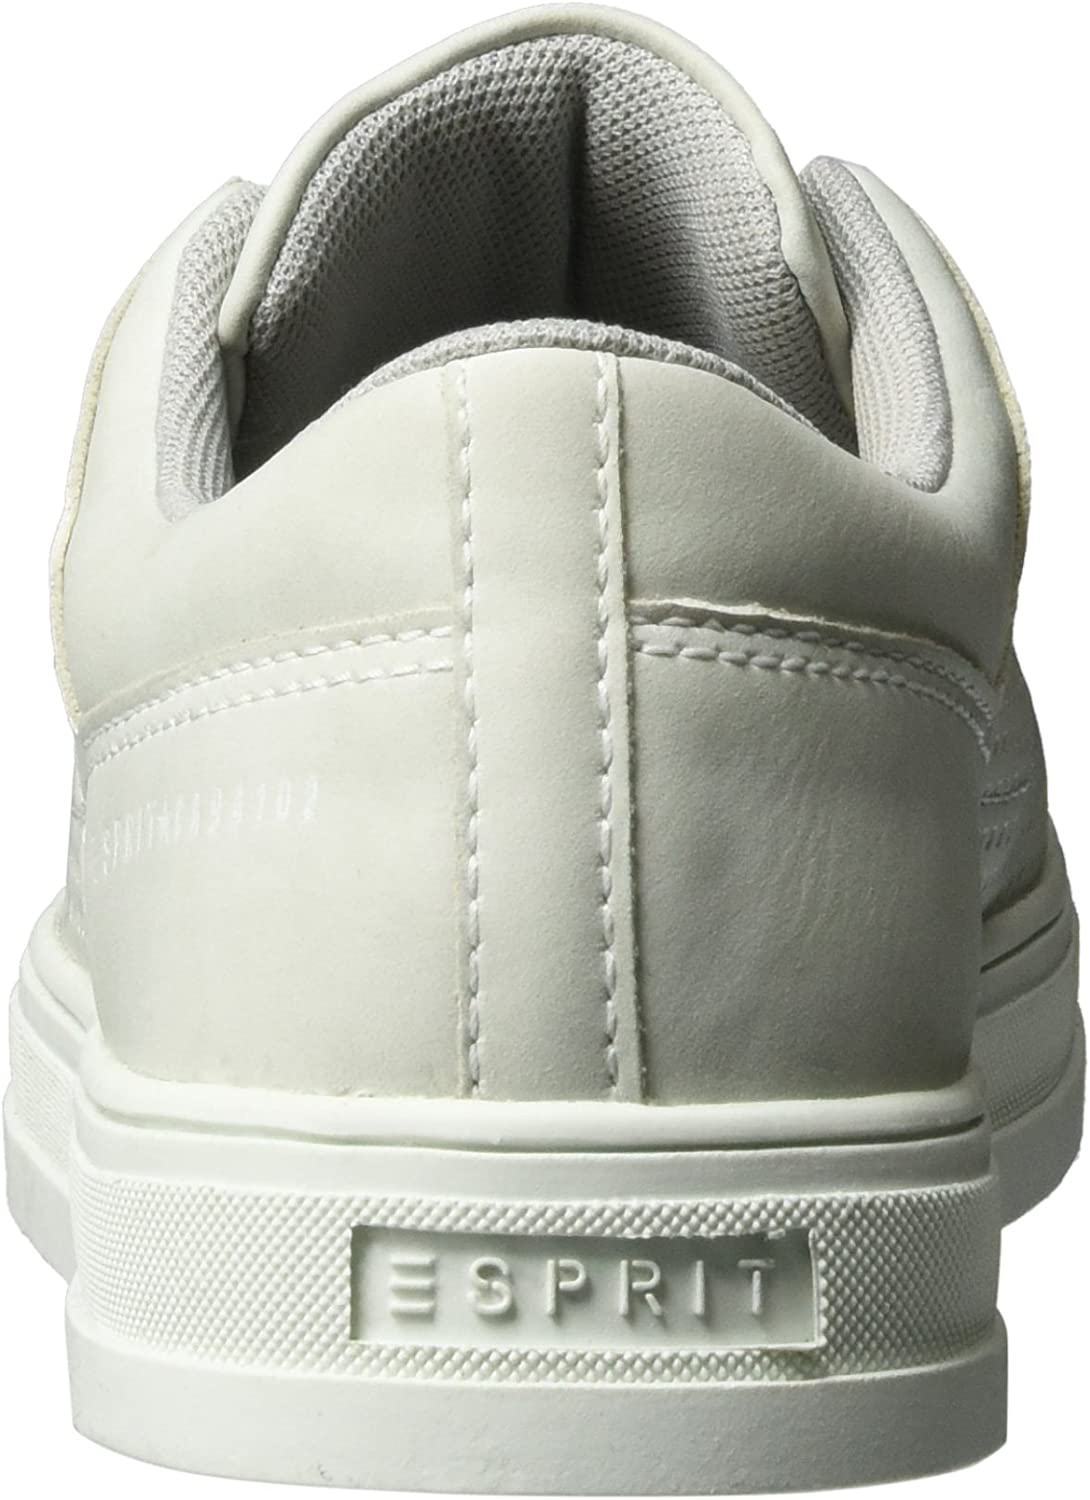 Red 3 UK Esprit Women/'s Sidney Perf Lace up Low-Top Sneakers